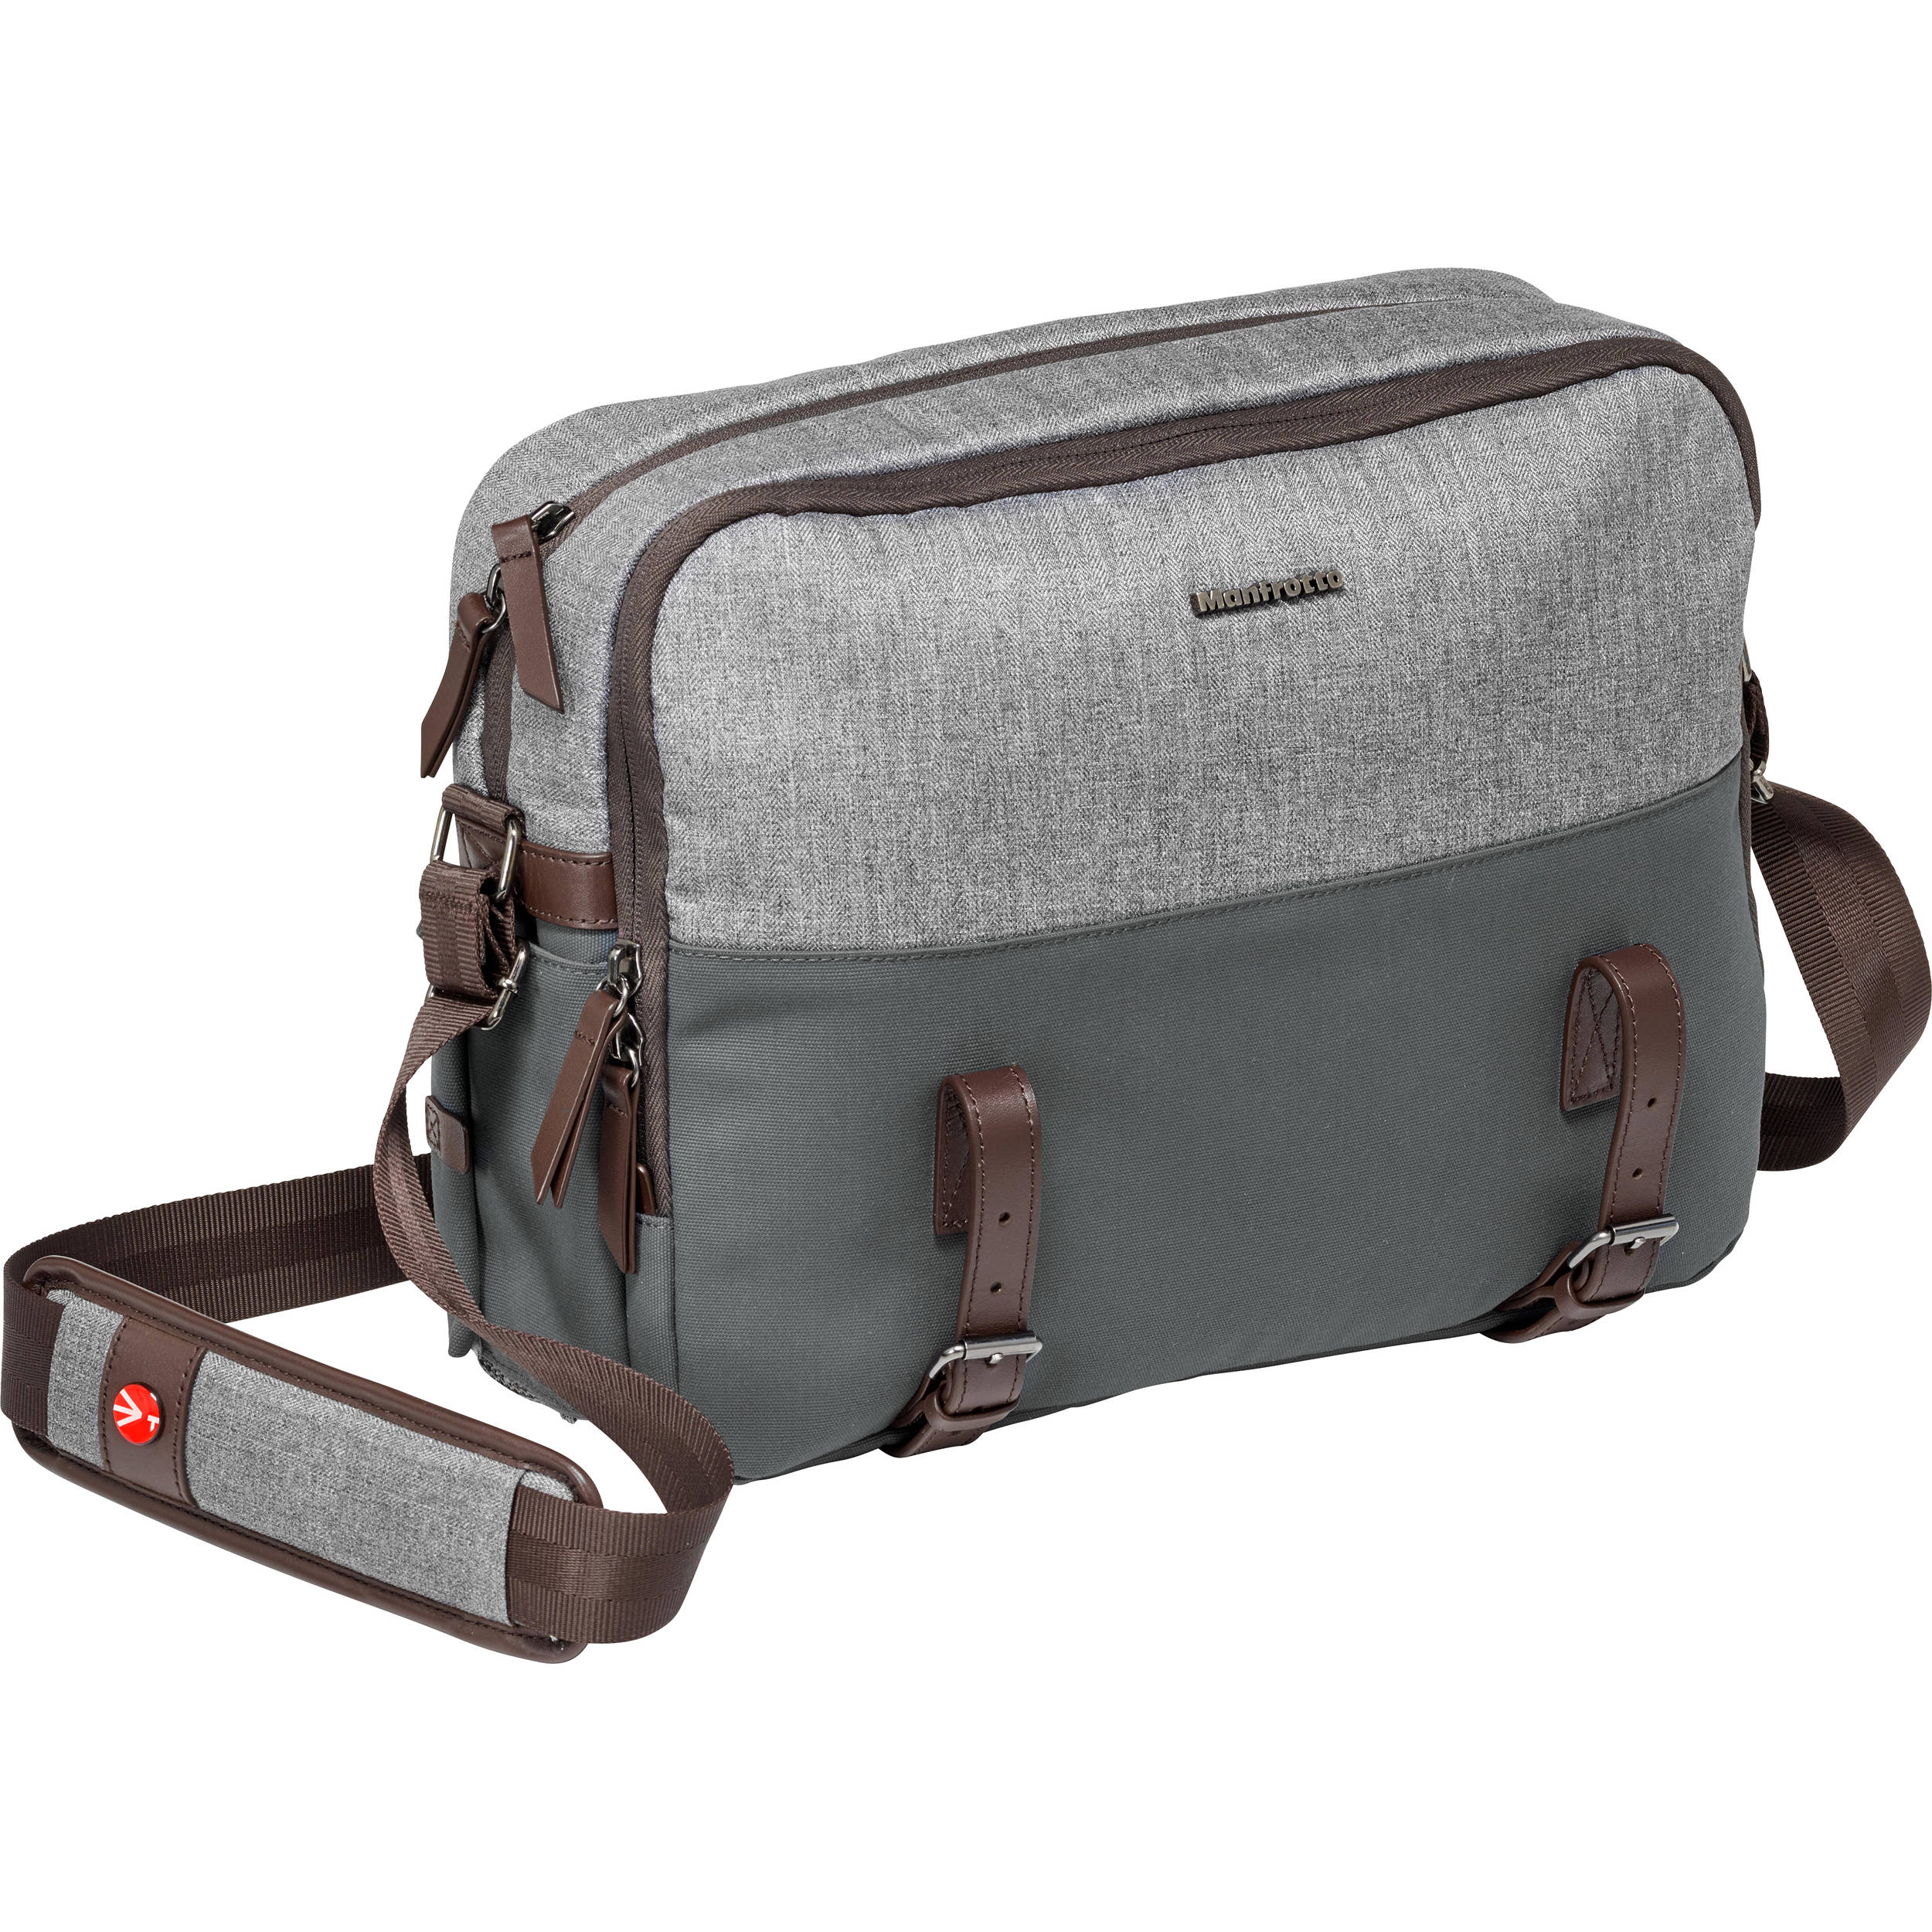 Manfrotto Windsor Camera Reporter Bag for DSLR (Gray) 661b4731641be